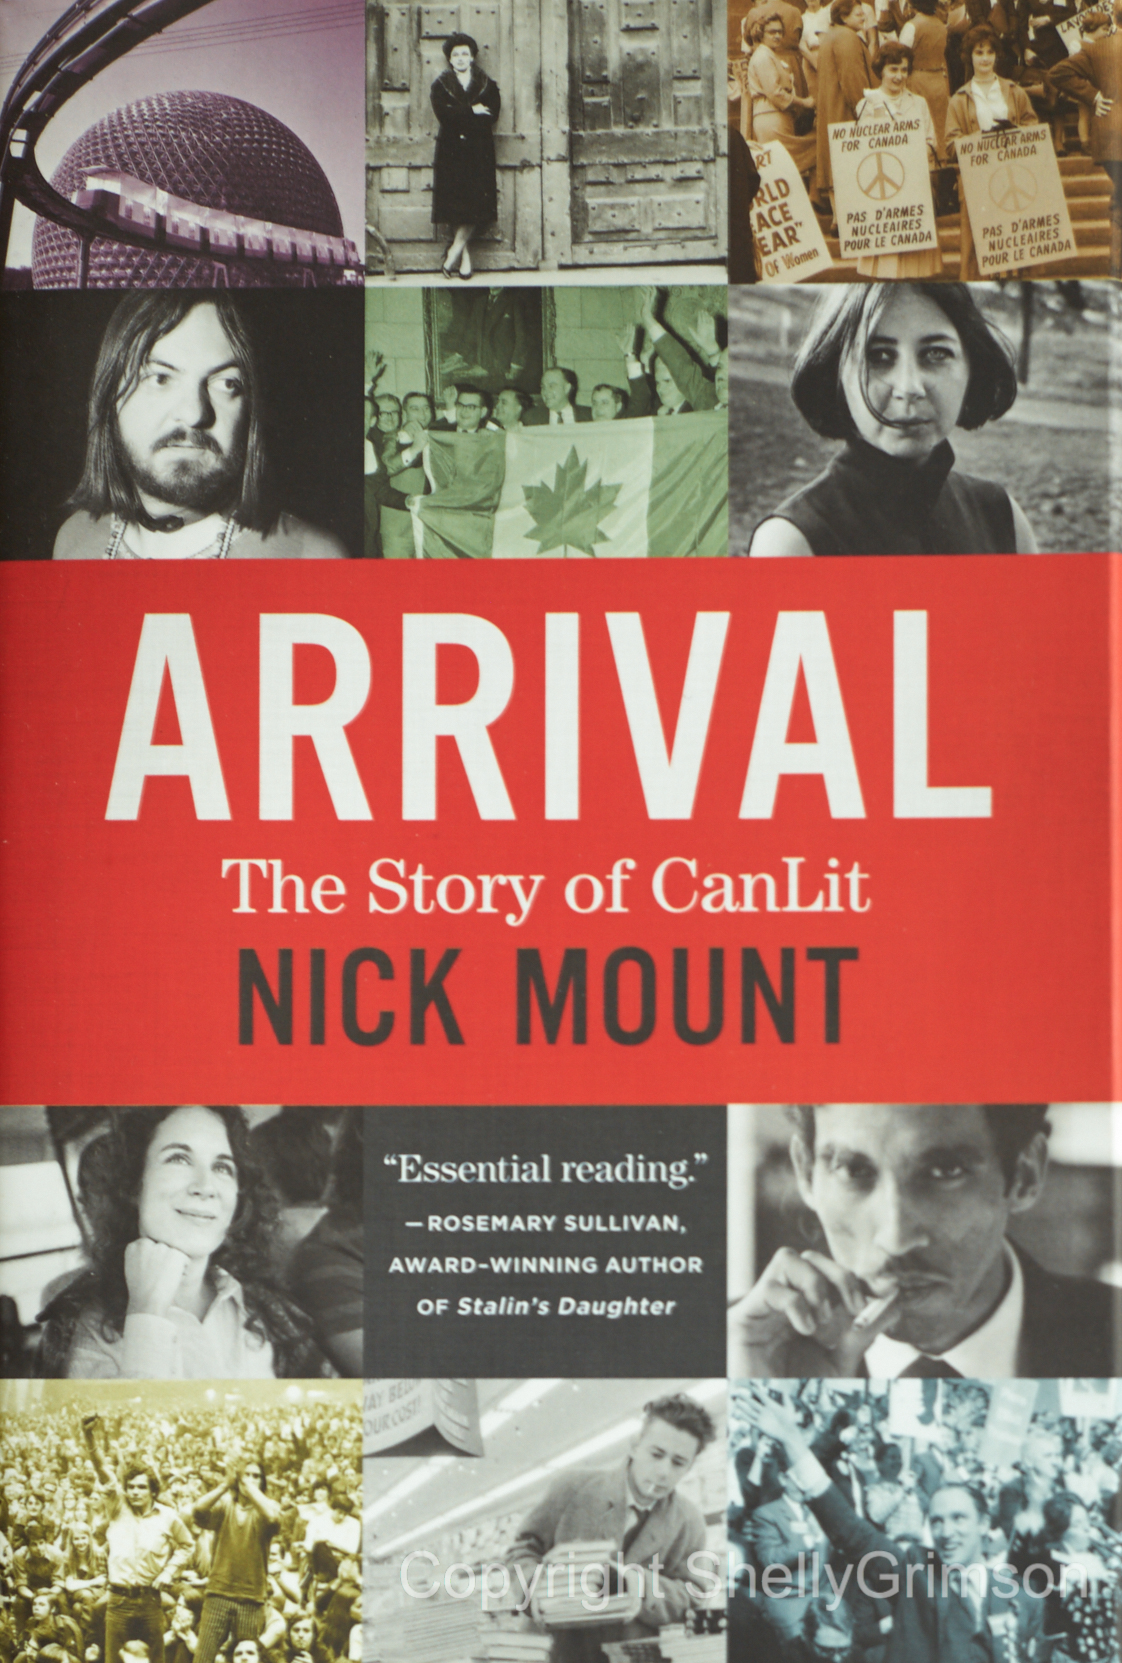 Arrival: The Story of CanLit , Nick Mountain, House of Anansi Press, Inc., 2017